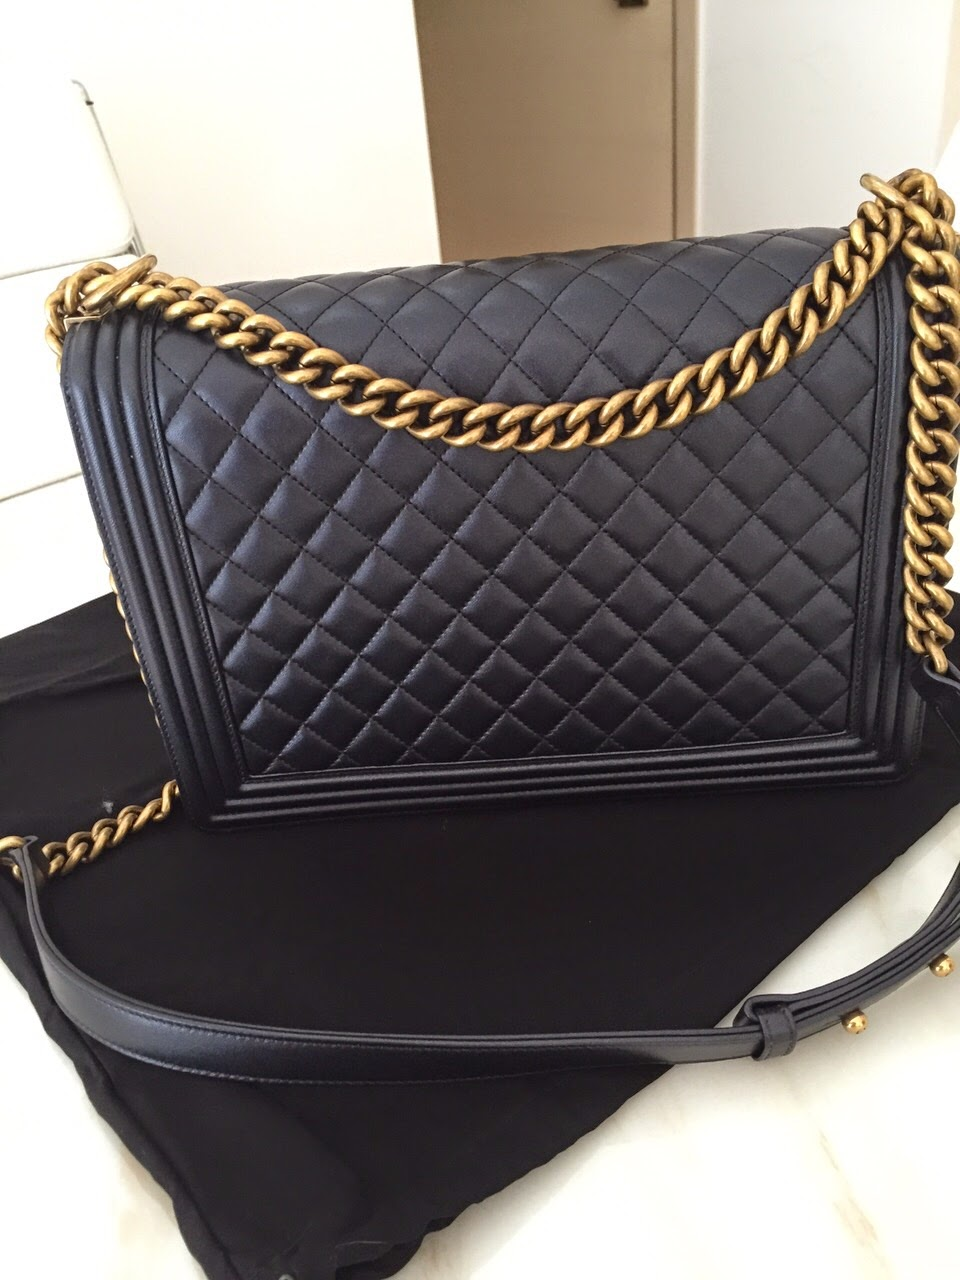 894e8a246a6c Brand New boy Chanel with gold hardware, in large size. Classic Black, so  versatile. Comes with Dust bag and authenticity card.